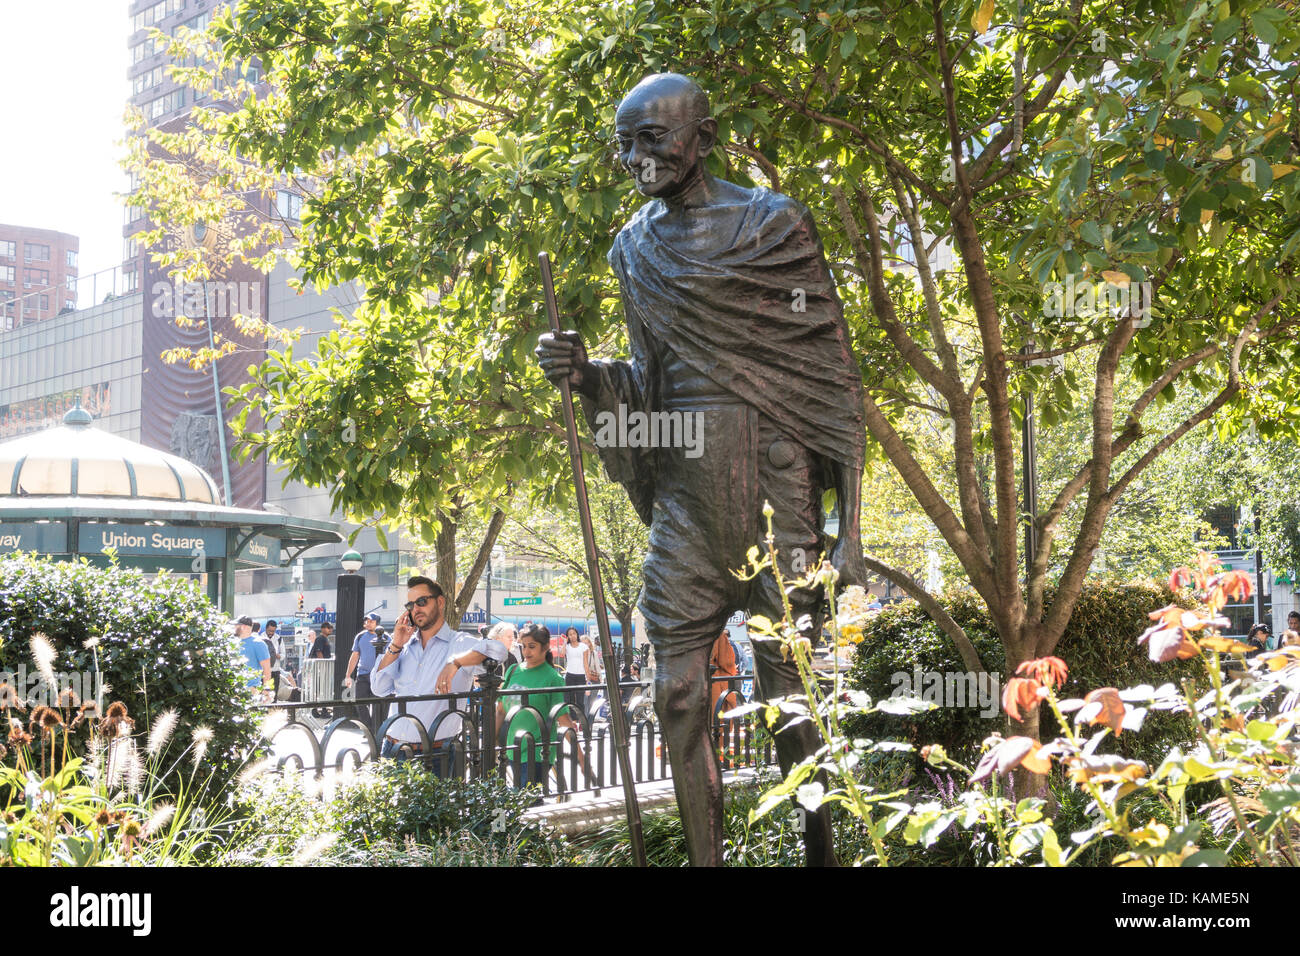 Gandhi Sculpture in Union Square Park, NYC, USA - Stock Image